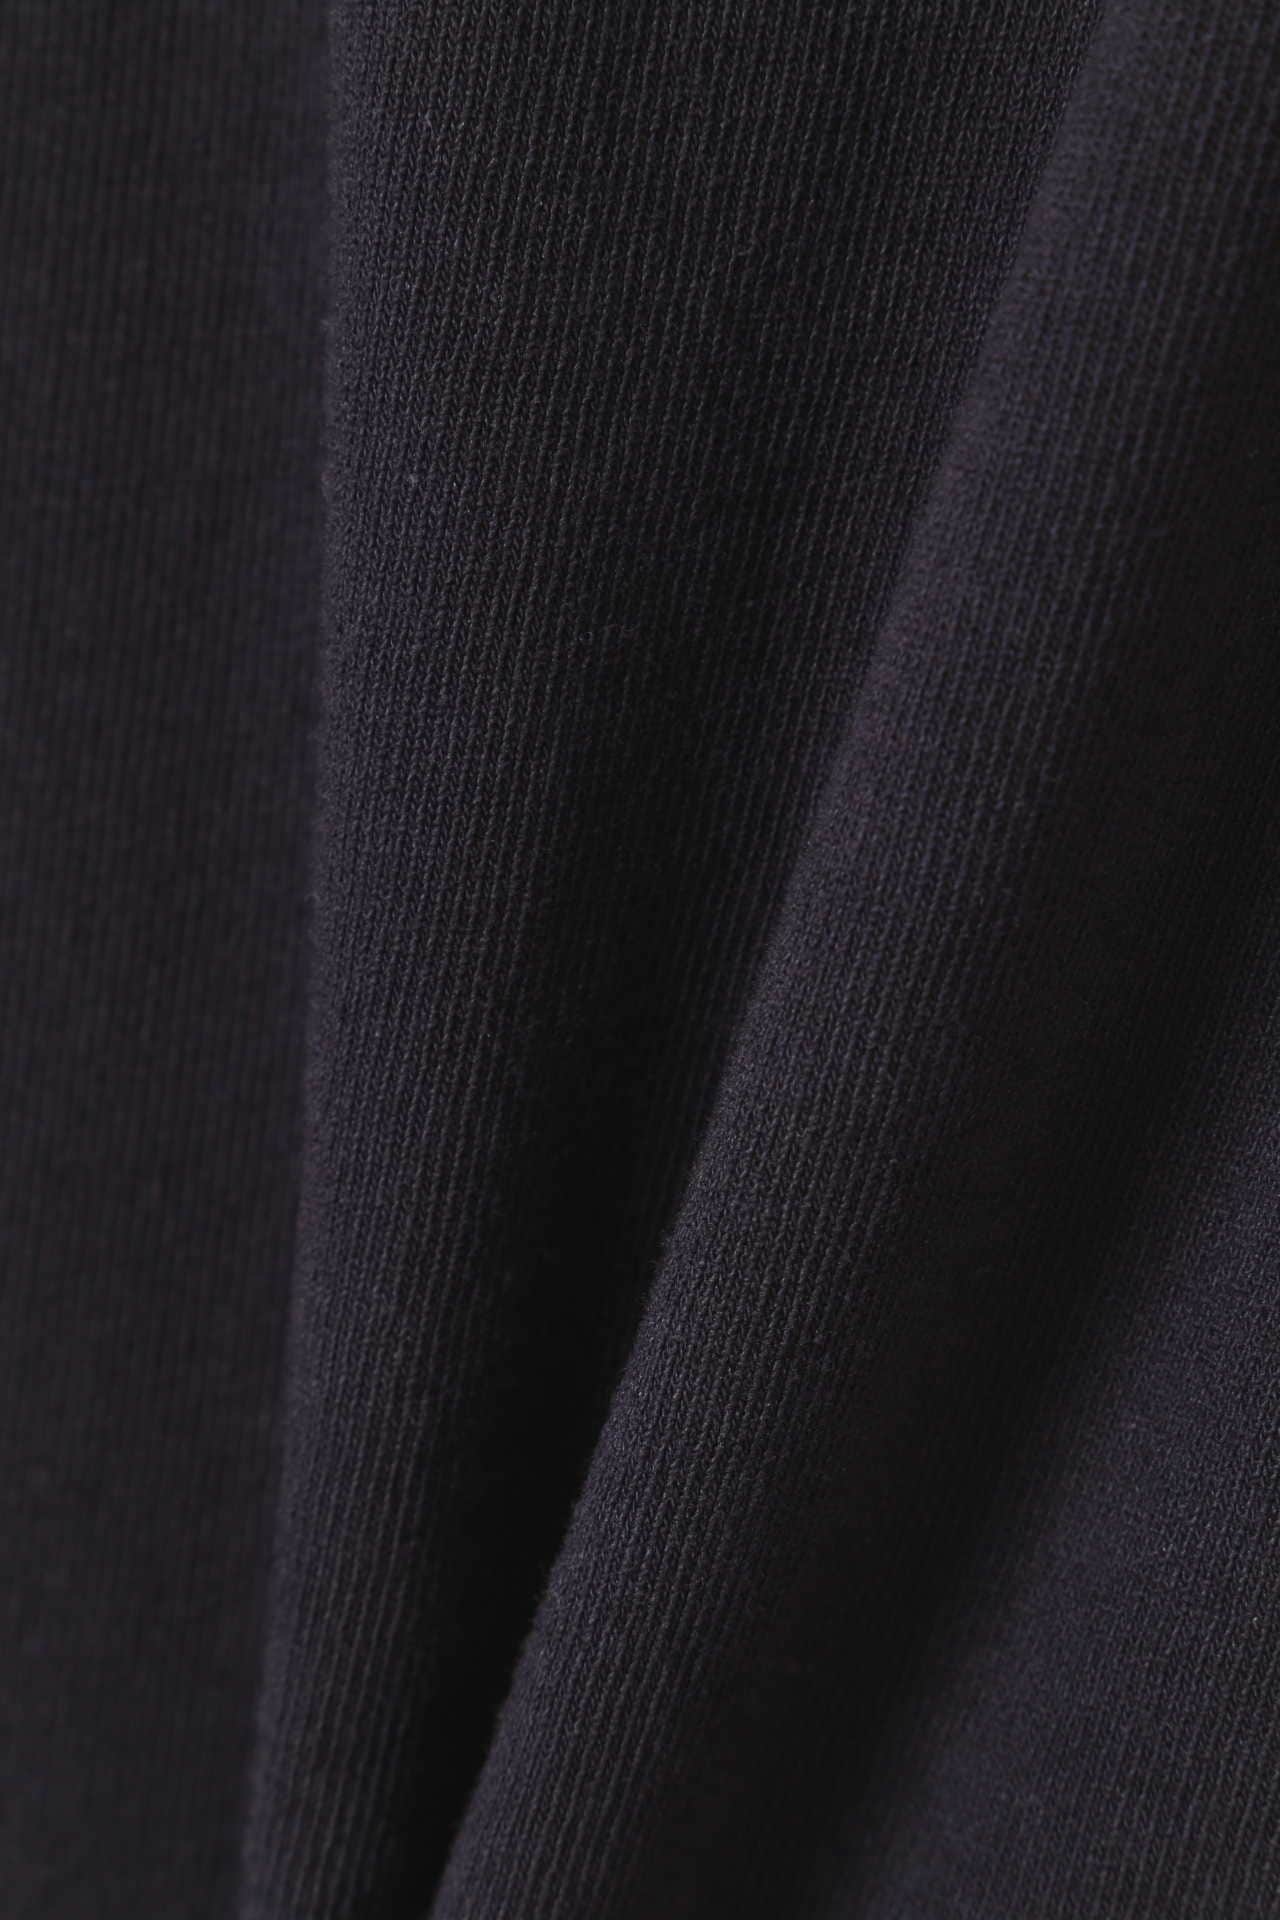 DRY COTTON JERSEY14